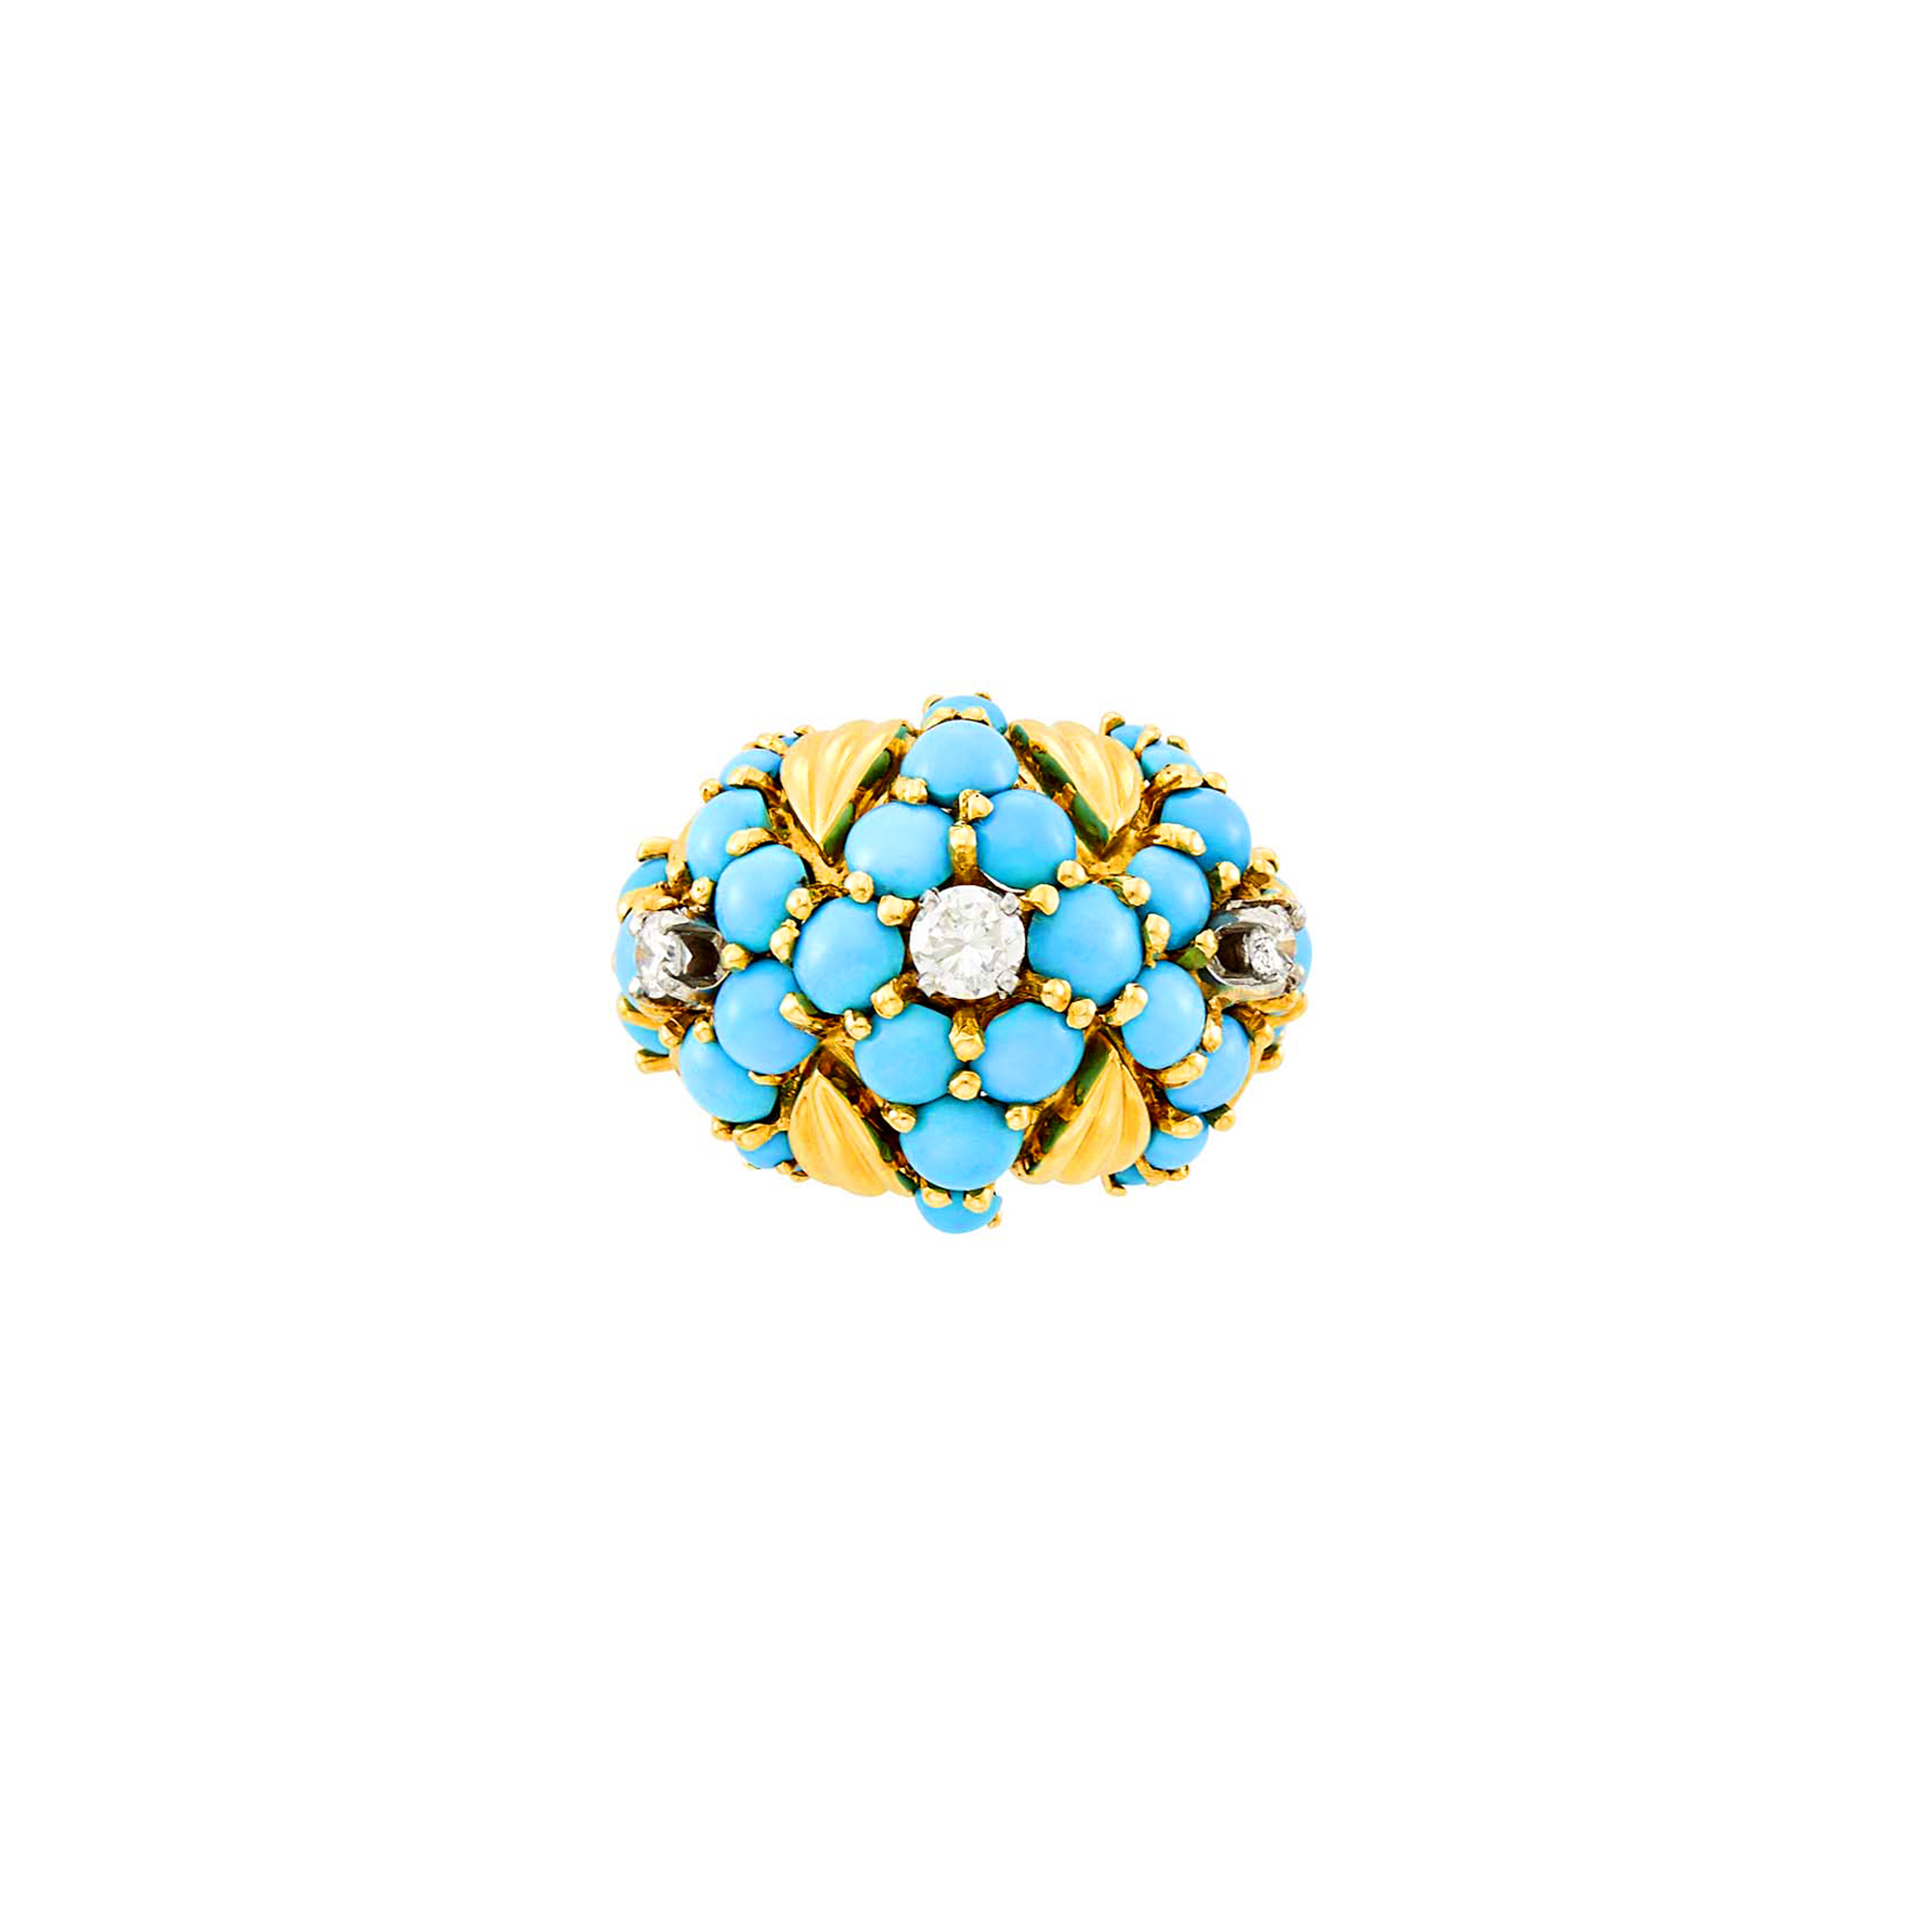 Lot image - Gold, Turquoise and Diamond Bombé Ring